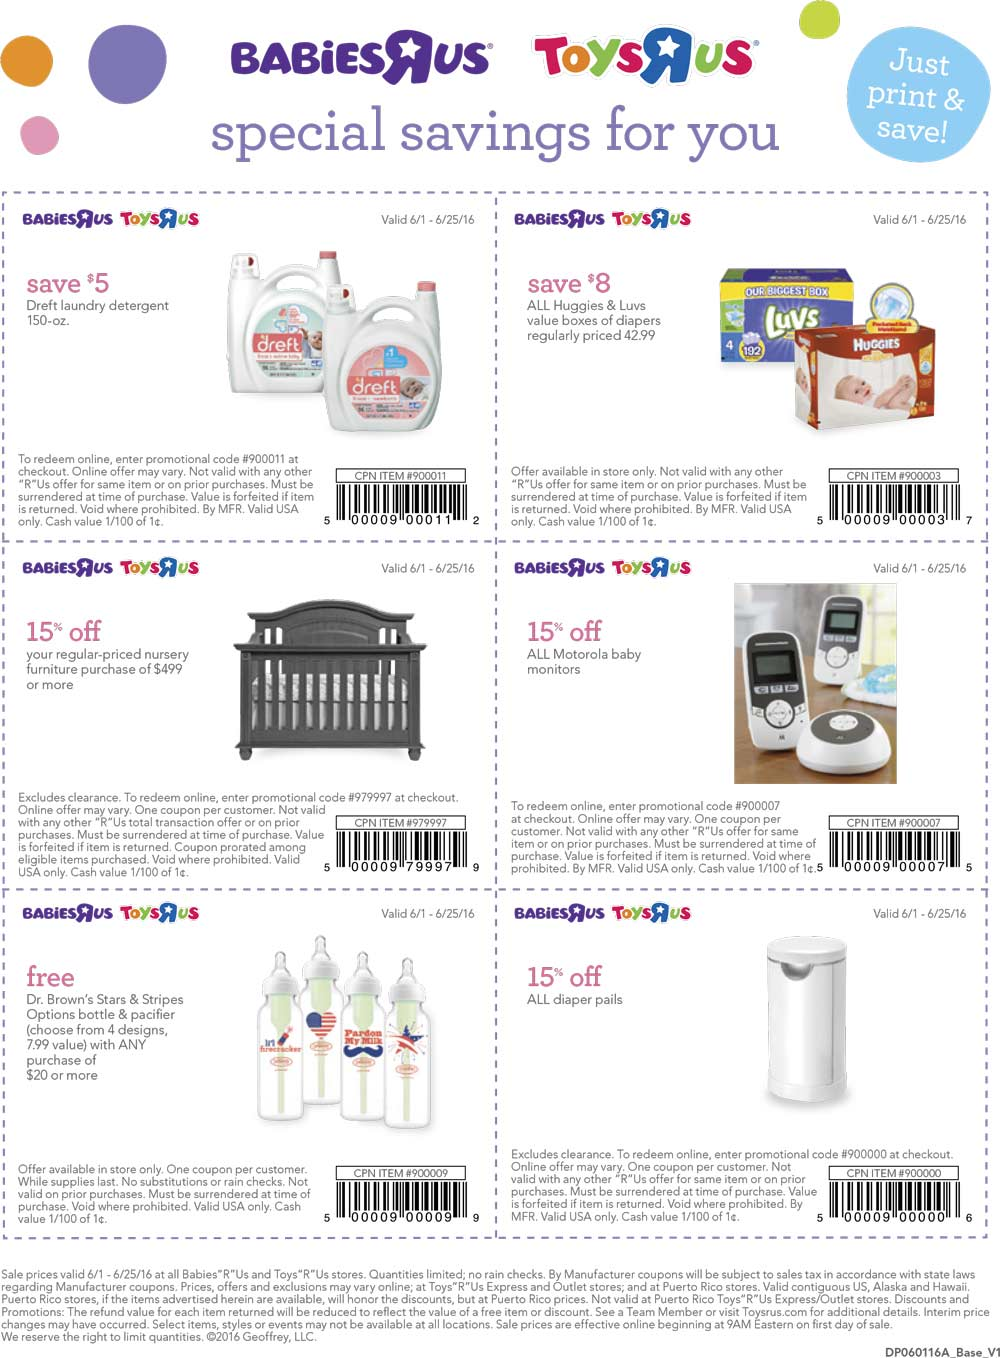 Babies R Us Coupon December 2017 $8 off diapers, free bottle & more at Babies R Us & Toys R Us